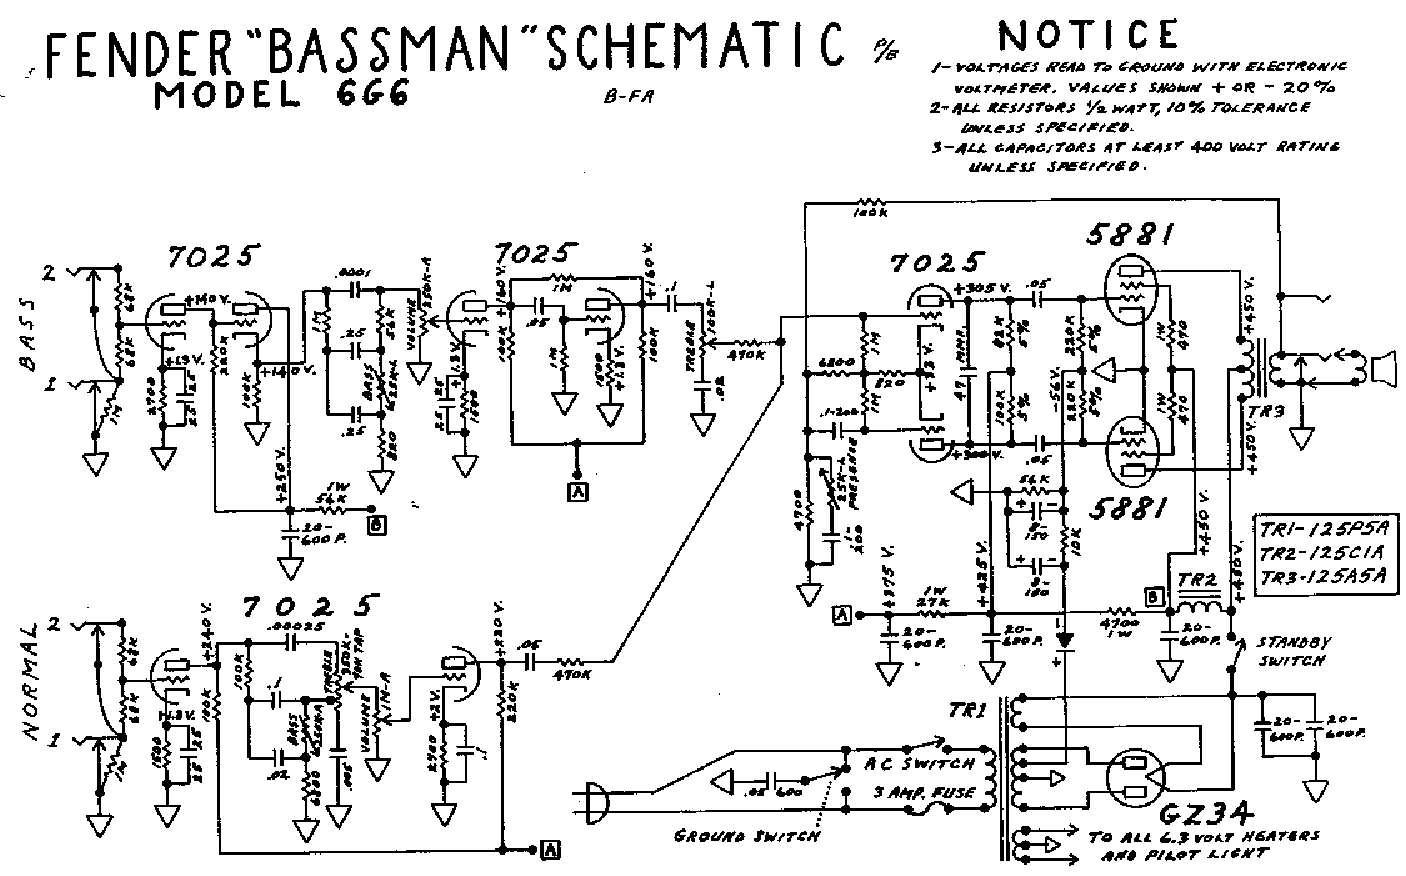 Fender Bassman 6g6 Sch Service Manual Download  Schematics  Eeprom  Repair Info For Electronics